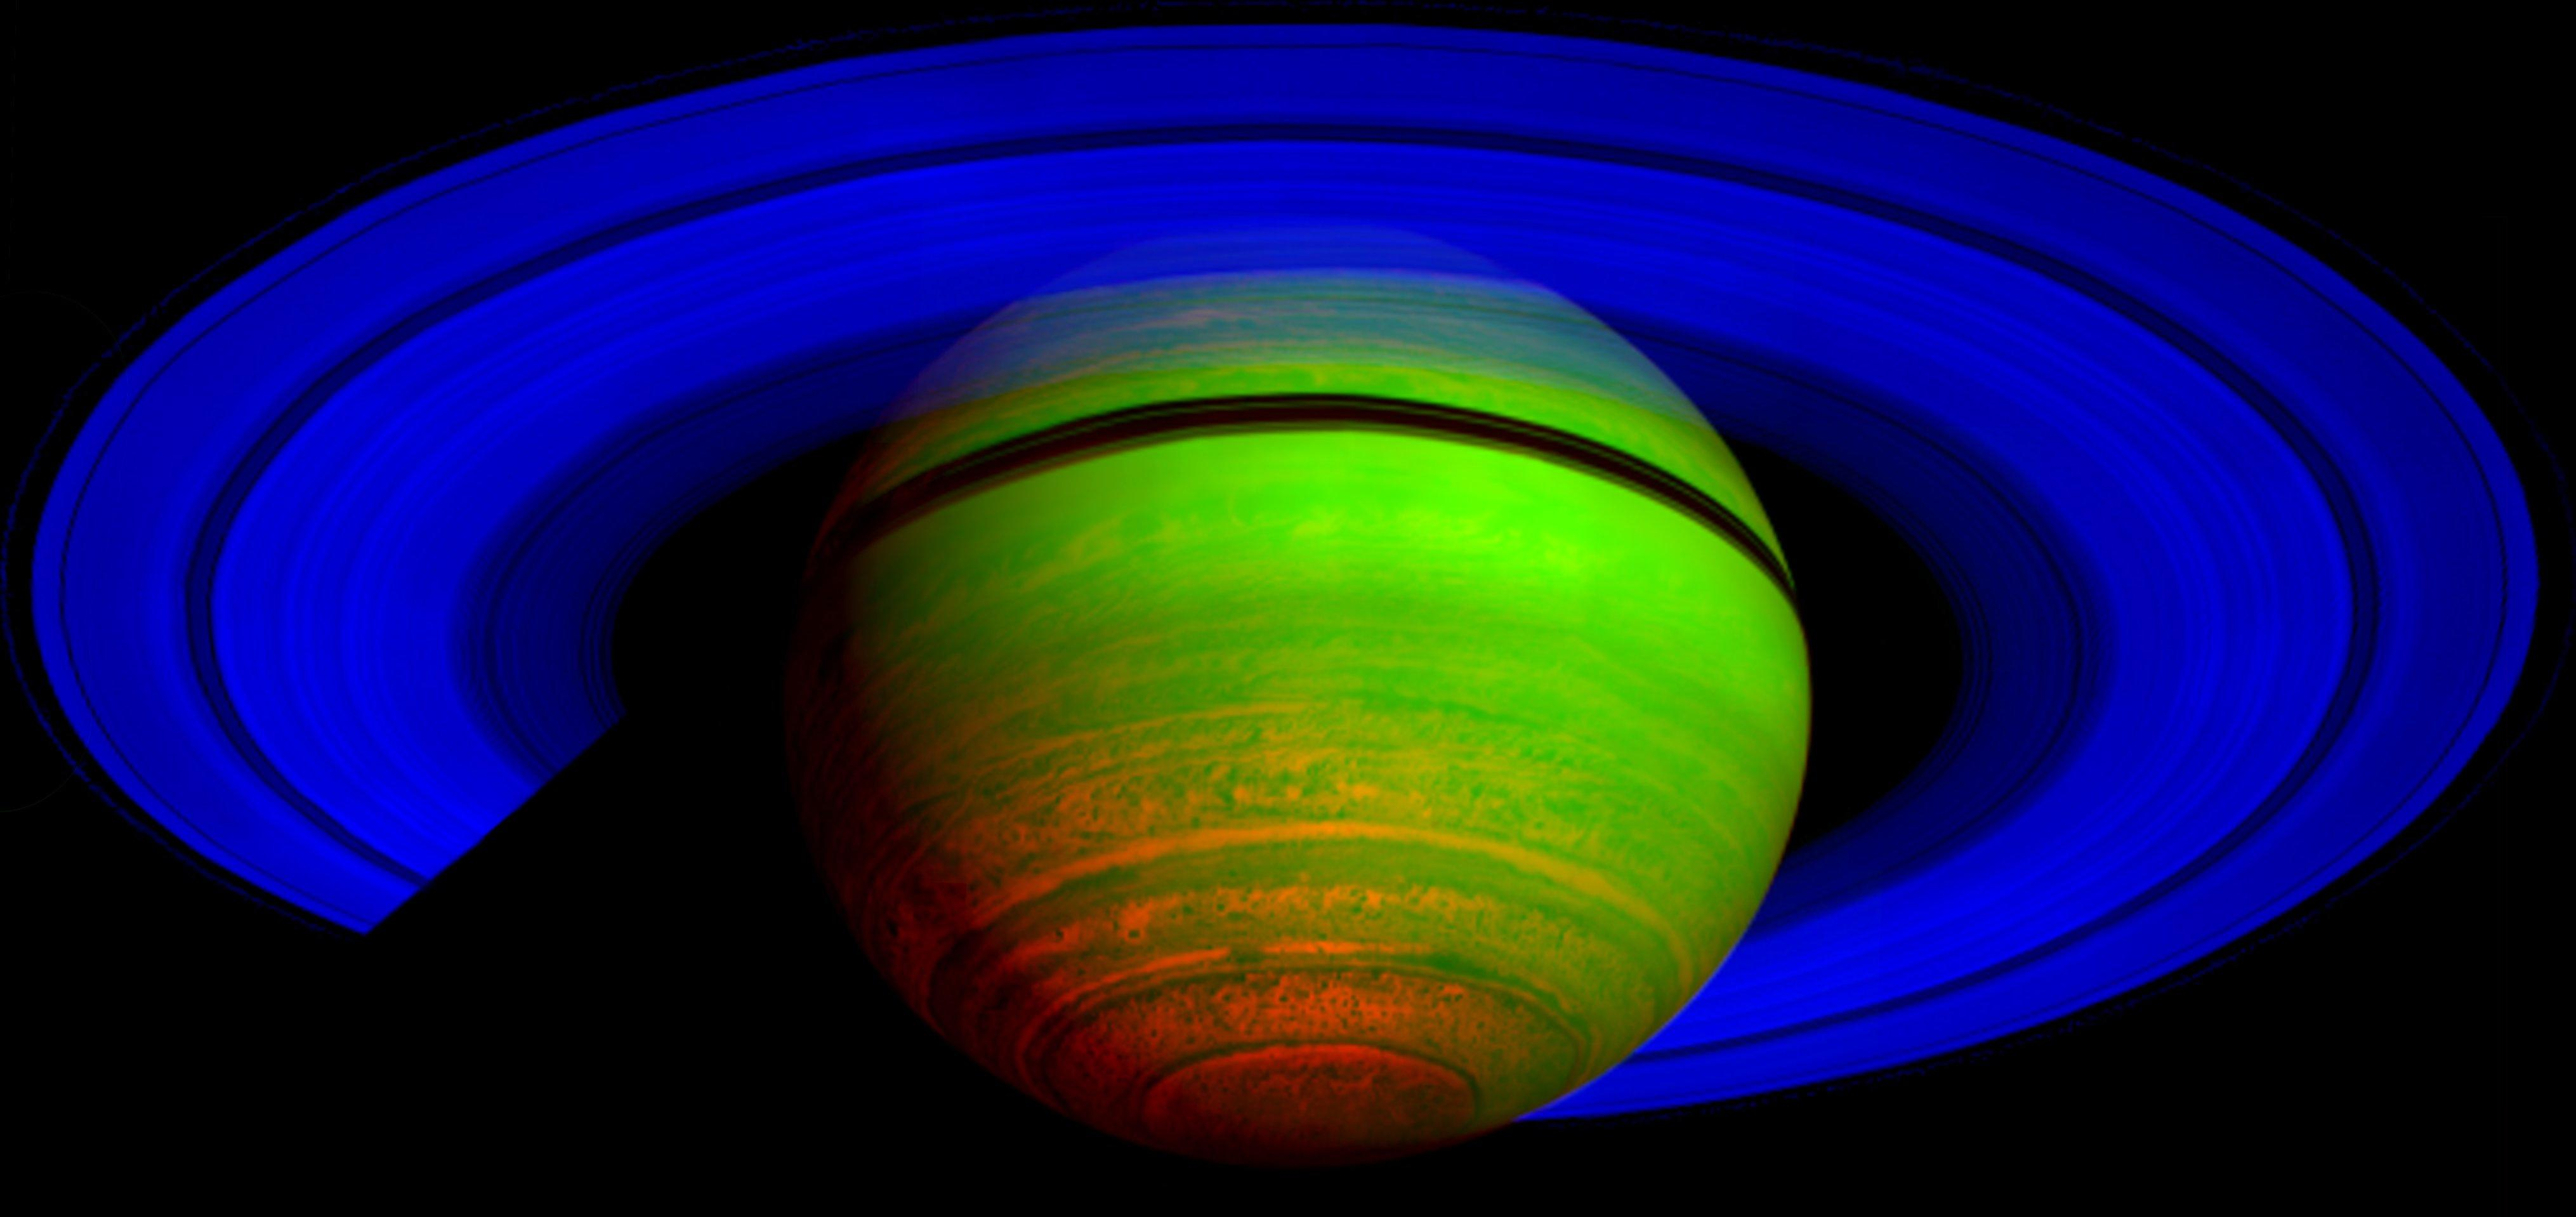 This false-color composite image shows Saturn's rings and southern hemisphere